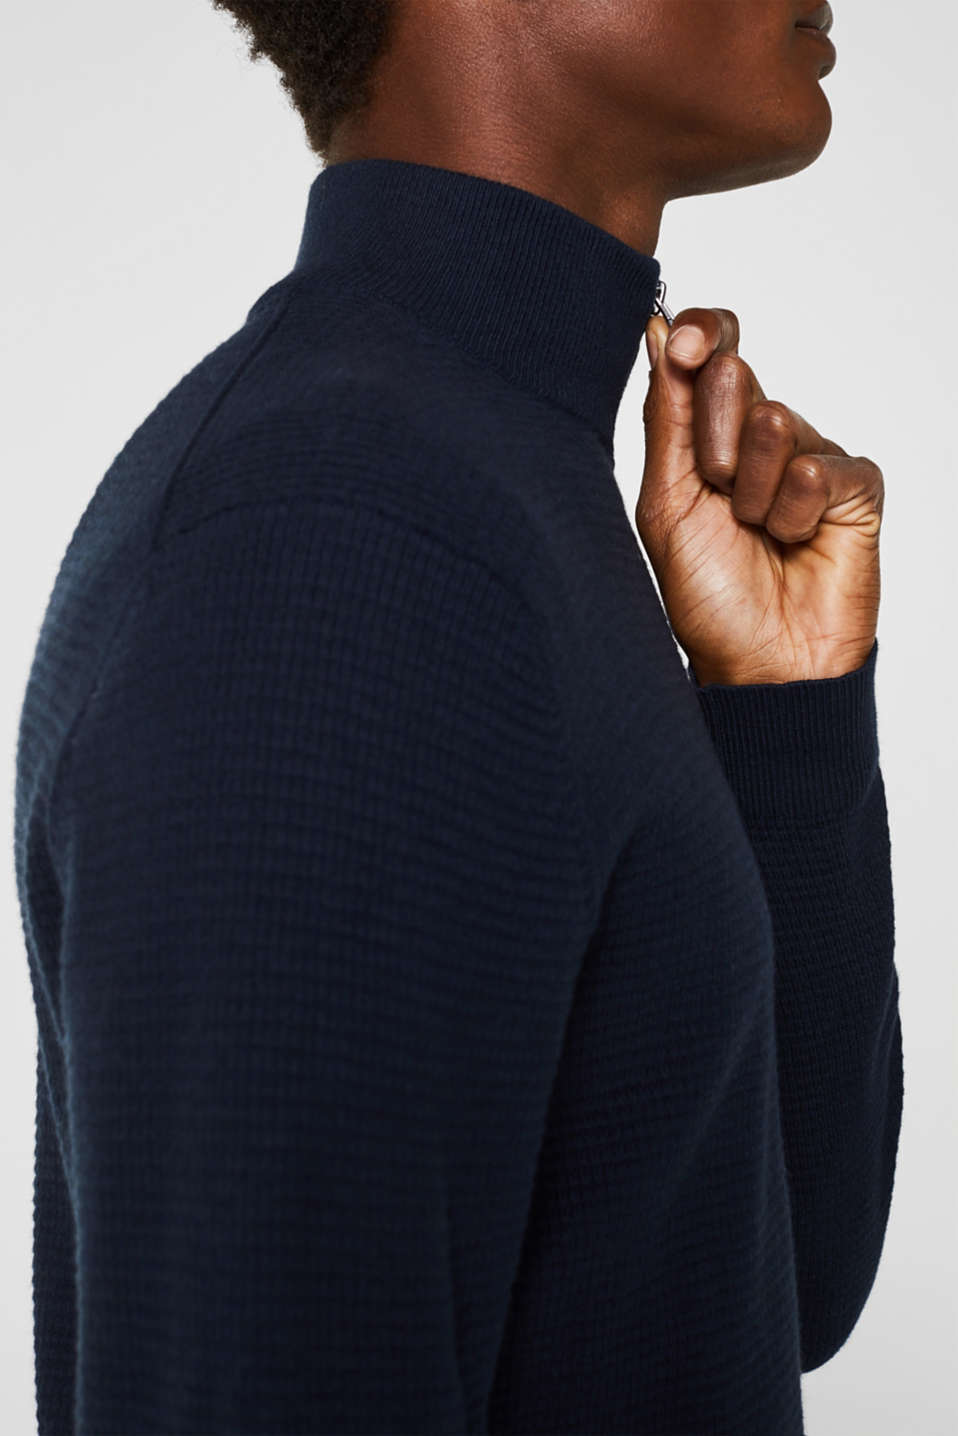 With cashmere: Textured knit jumper, NAVY, detail image number 6